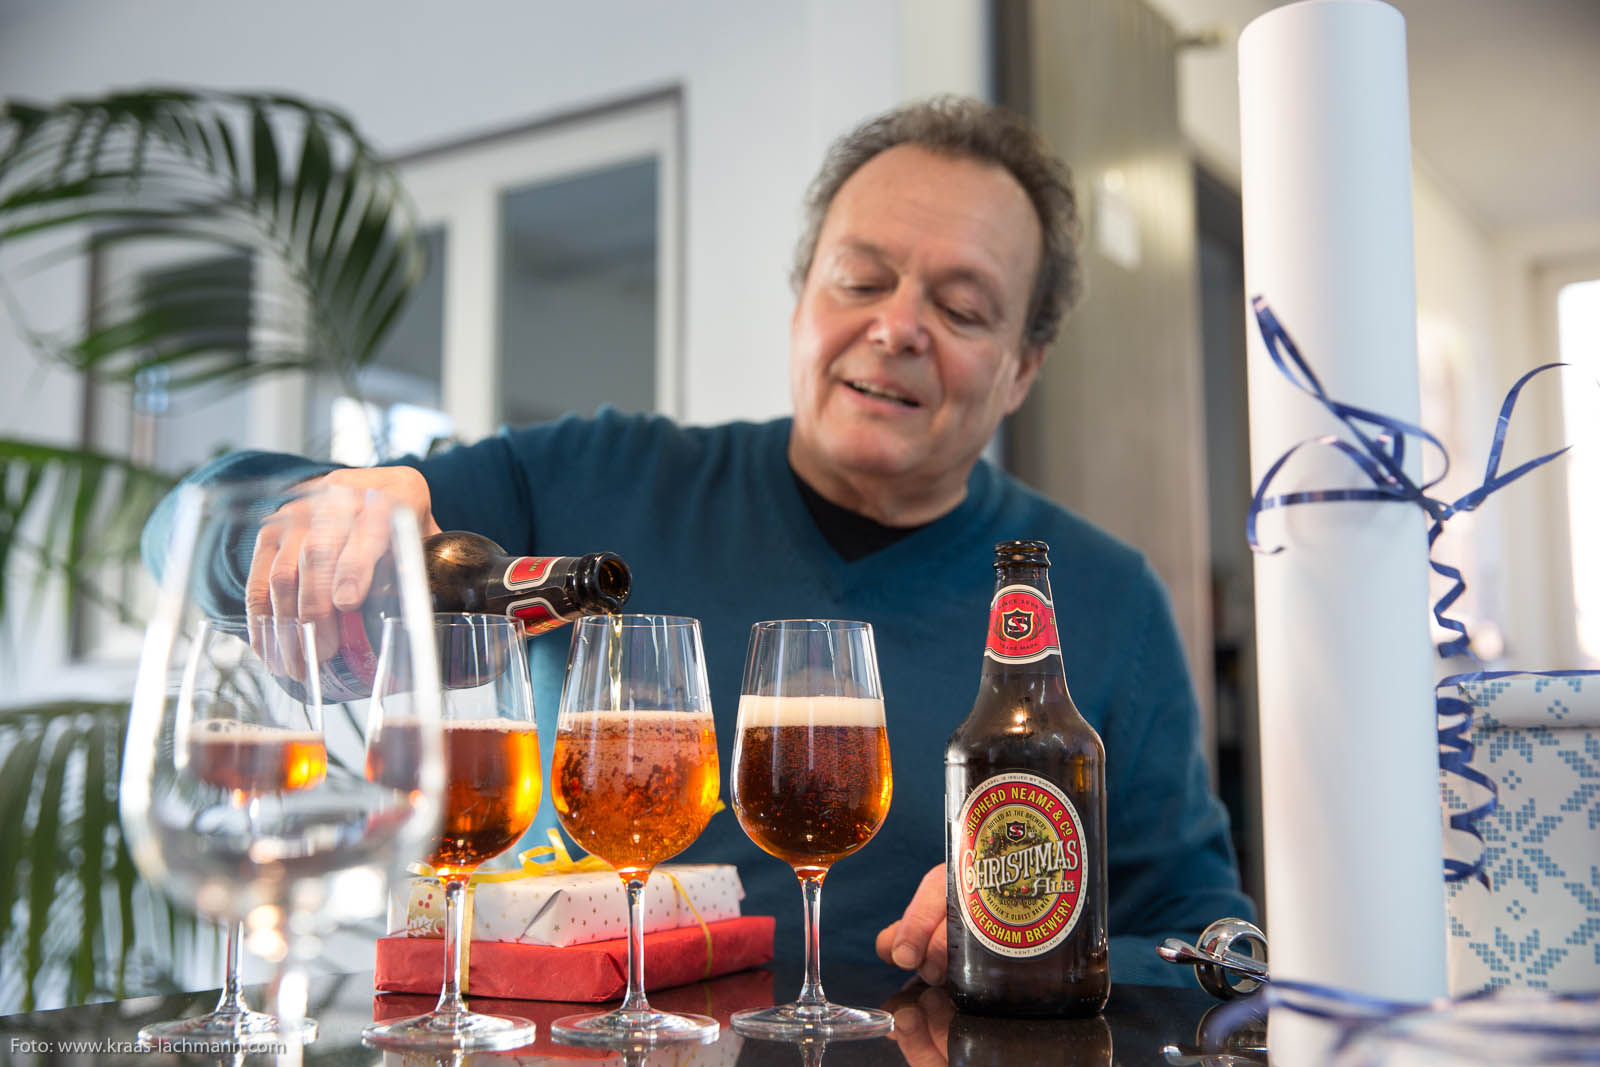 He is neither a shepherd nor from Faversham but he sure knows how to pour a Christmas ale.